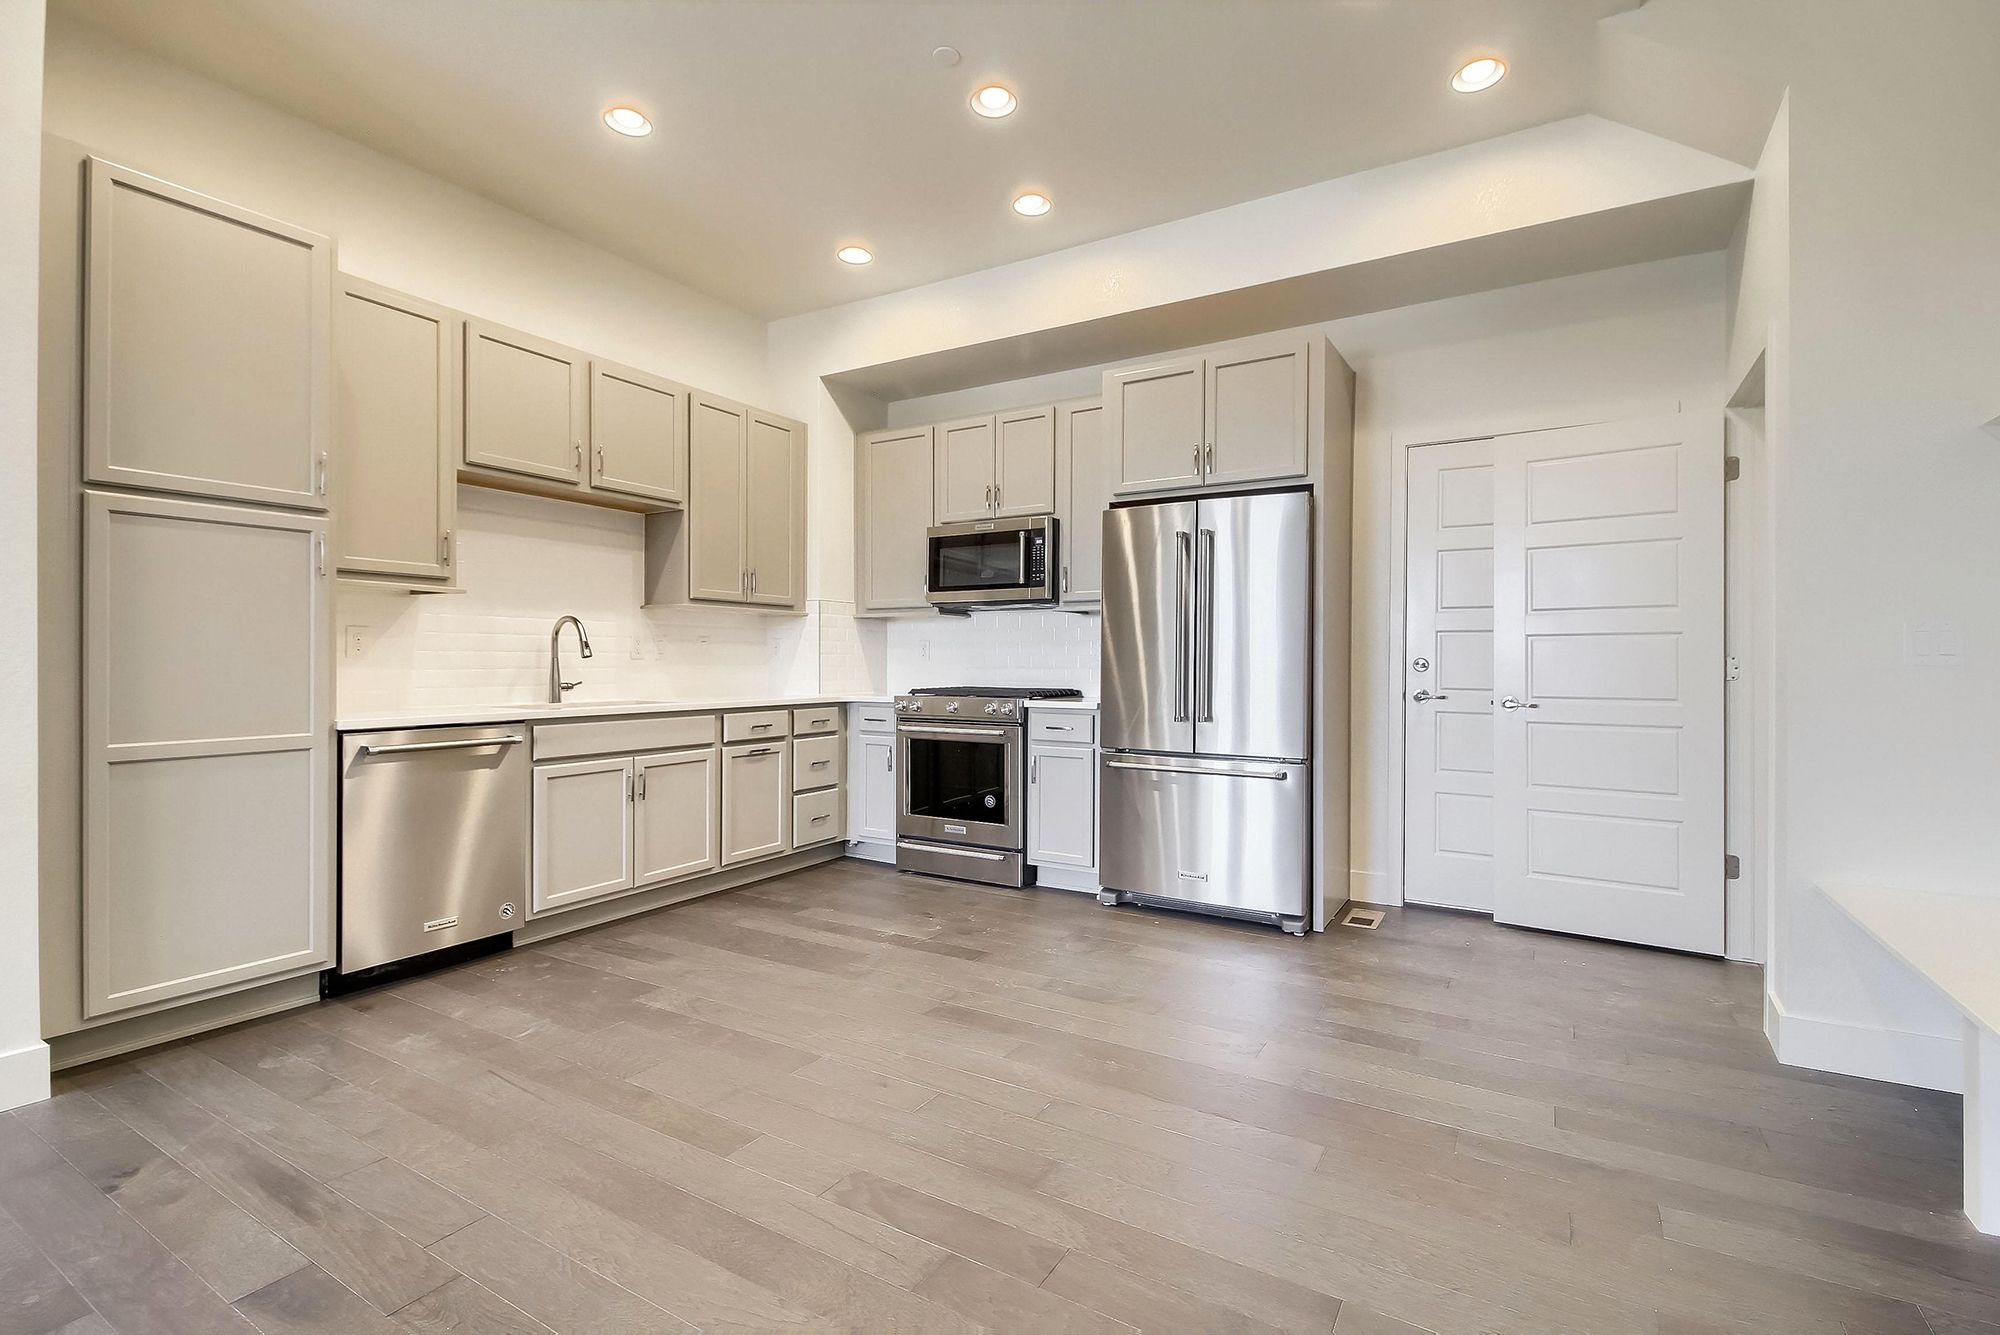 Kitchen featured in the Vitality By Thrive Home Builders in Boulder-Longmont, CO